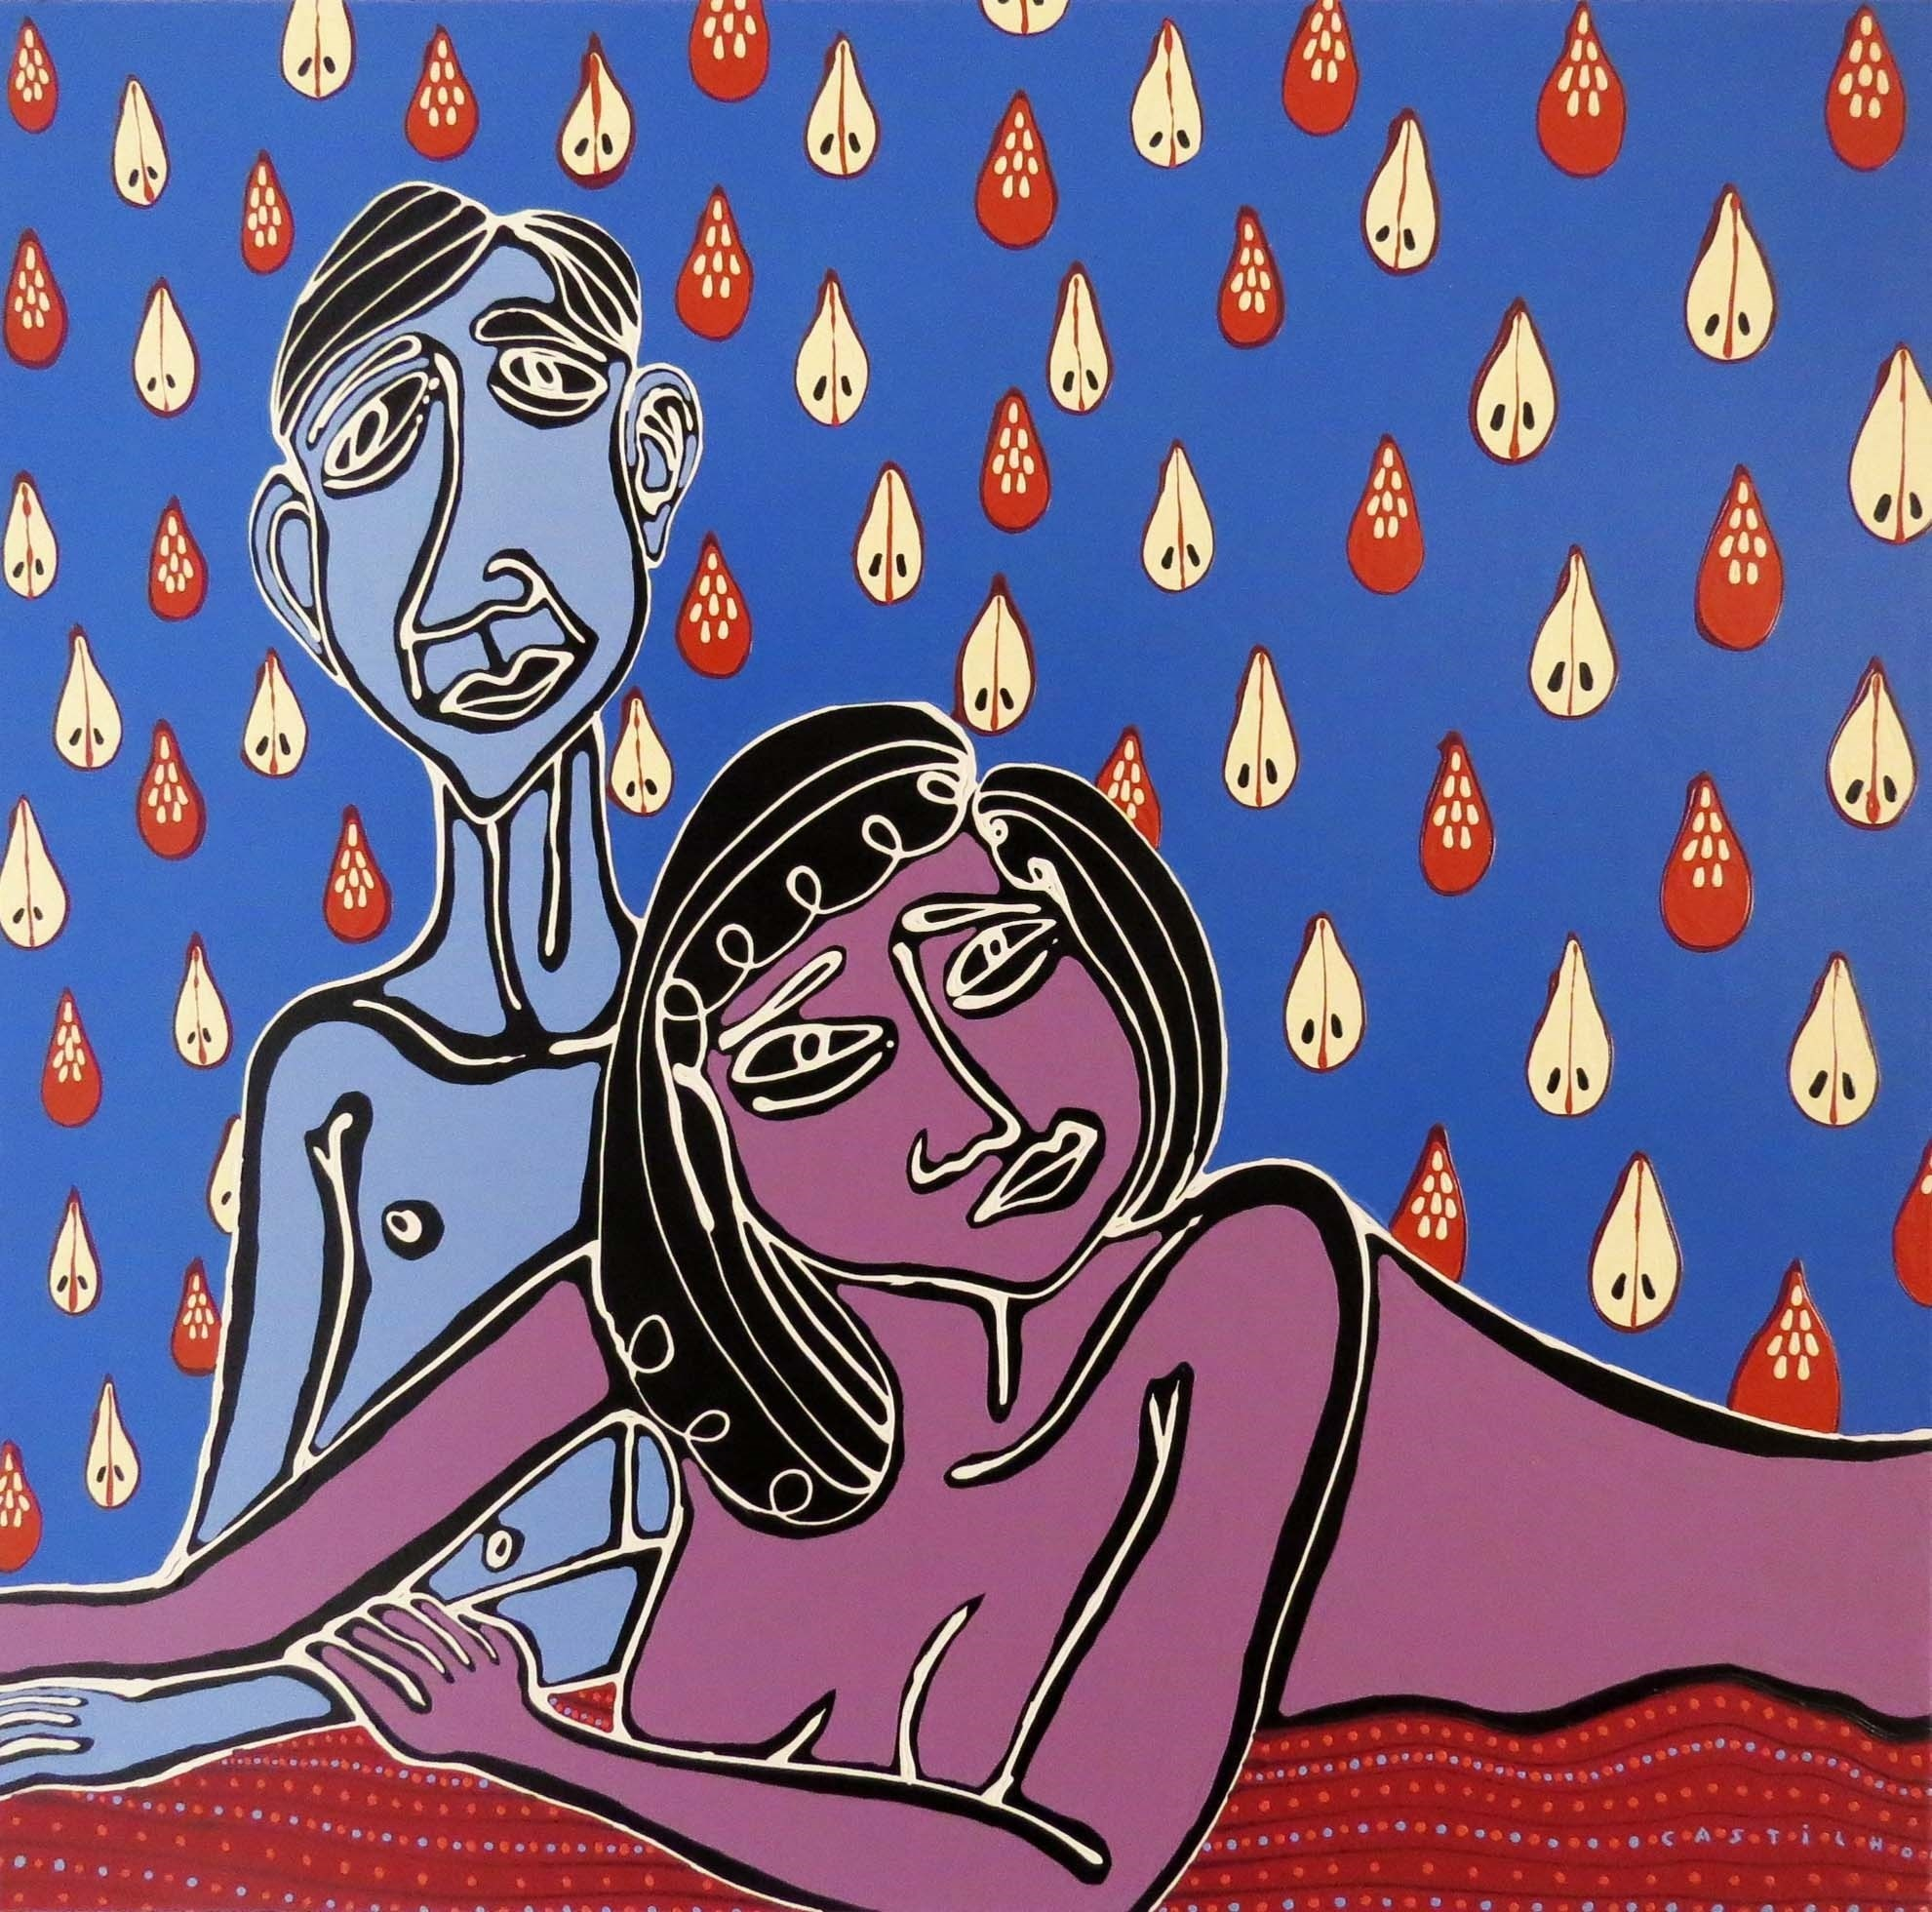 Casal na cama, original Abstract Acrylic Painting by Hugo Castilho